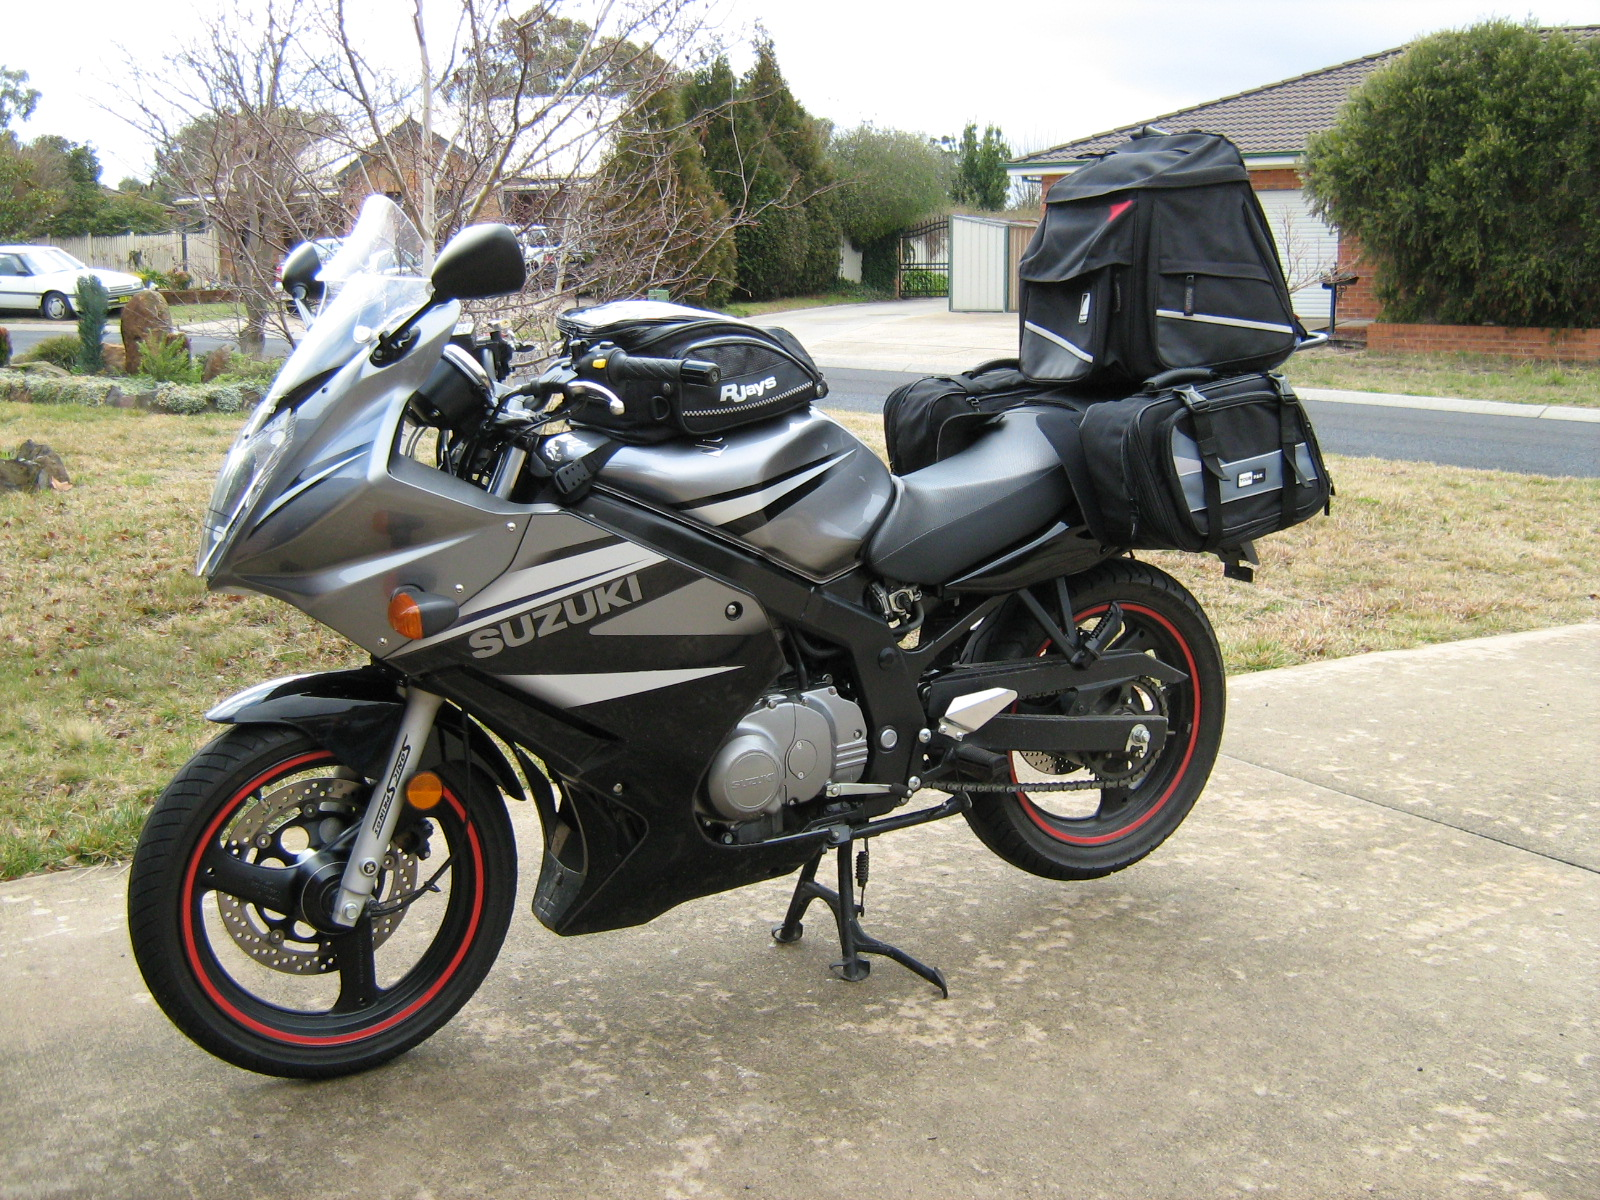 2004 suzuki gs 500 e pics specs and information. Black Bedroom Furniture Sets. Home Design Ideas